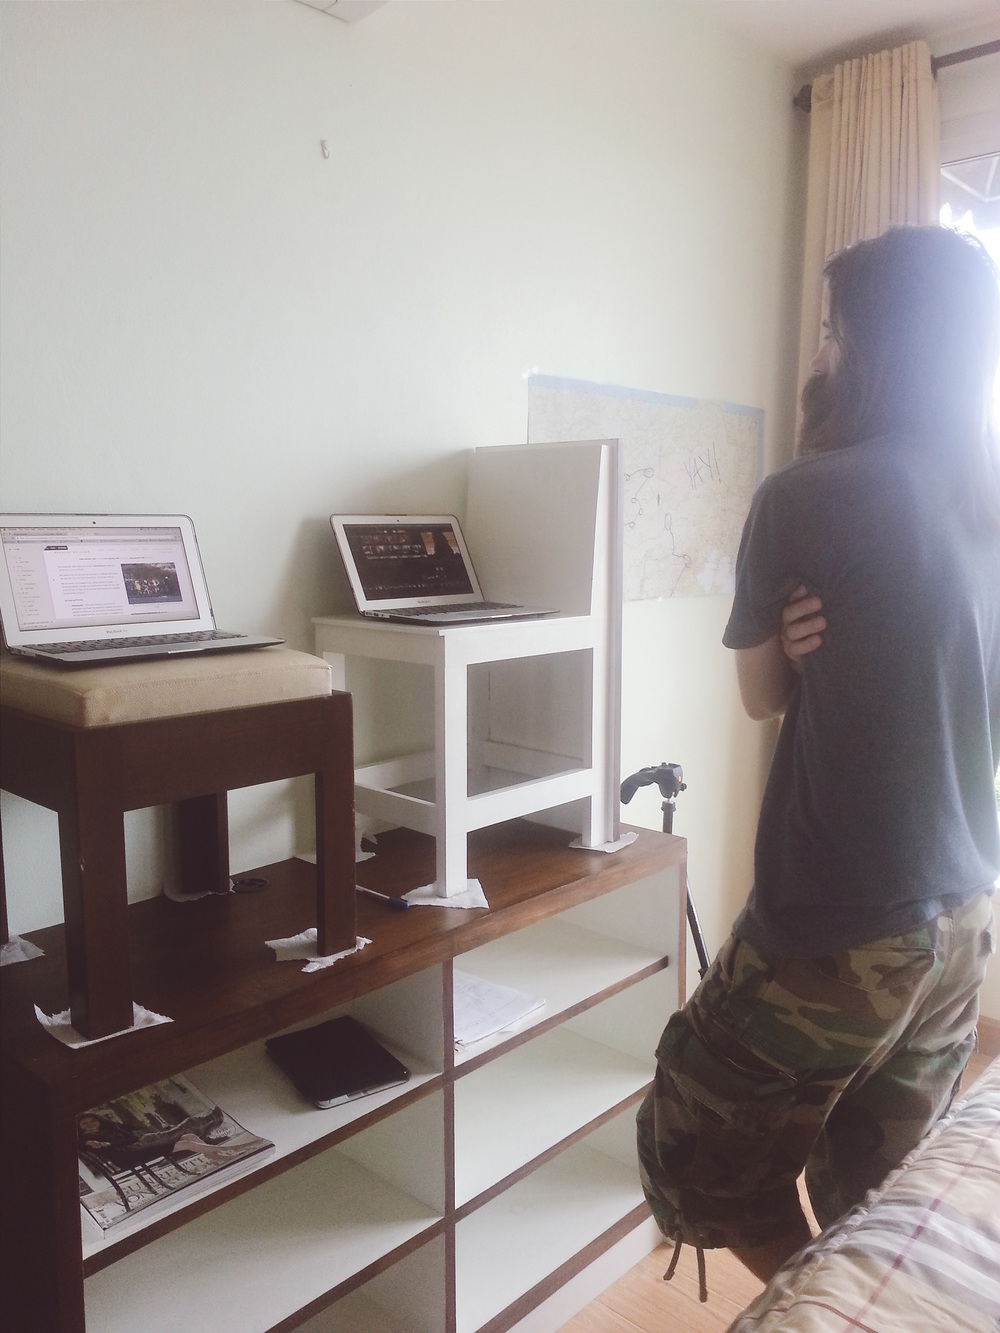 Yes, we made our own ergonomic standing workstations out of a stool and a chair we had in the apartment. Our landlord follows us on here (Hi Yuthapong!) so the paper towel legs are to show him we're taking care of the place, and that we are committed to getting our security deposit back! :) #TravelGlamlife